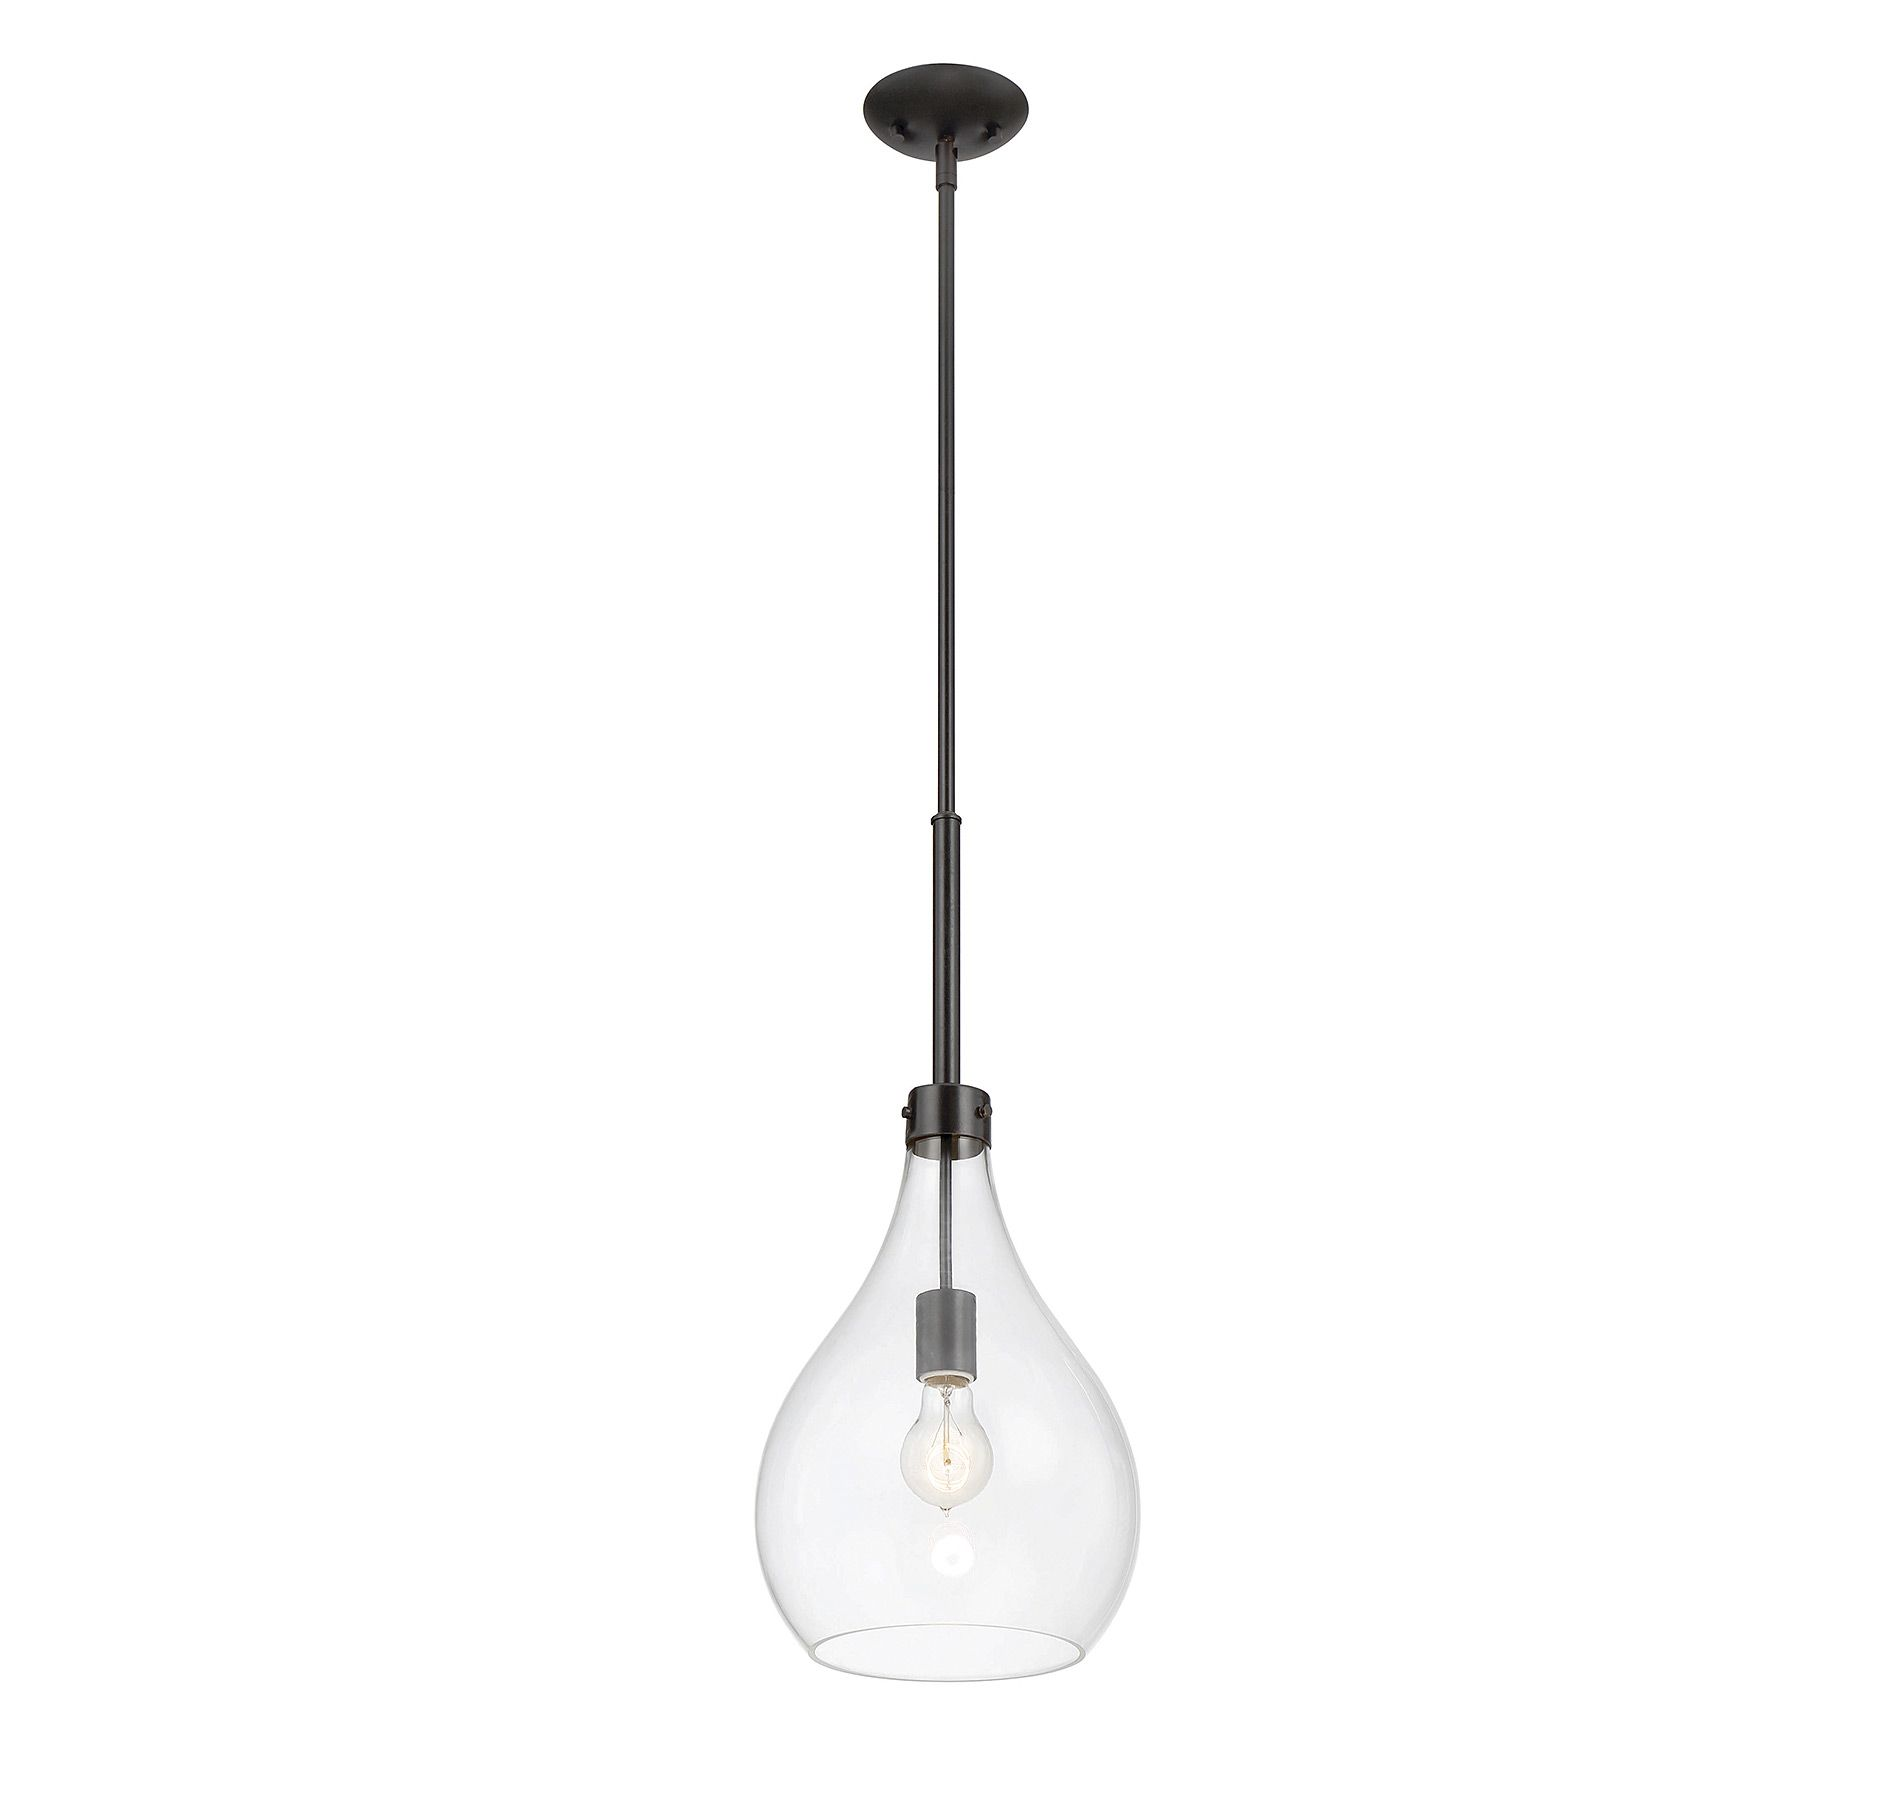 Pulaski mini pendant pendants products savoy house lighting the savoy house pulaski mini pendant showcases an oversized curved clear glass shade that pairs with the streamlined structure and oiled bronze finish for aloadofball Choice Image